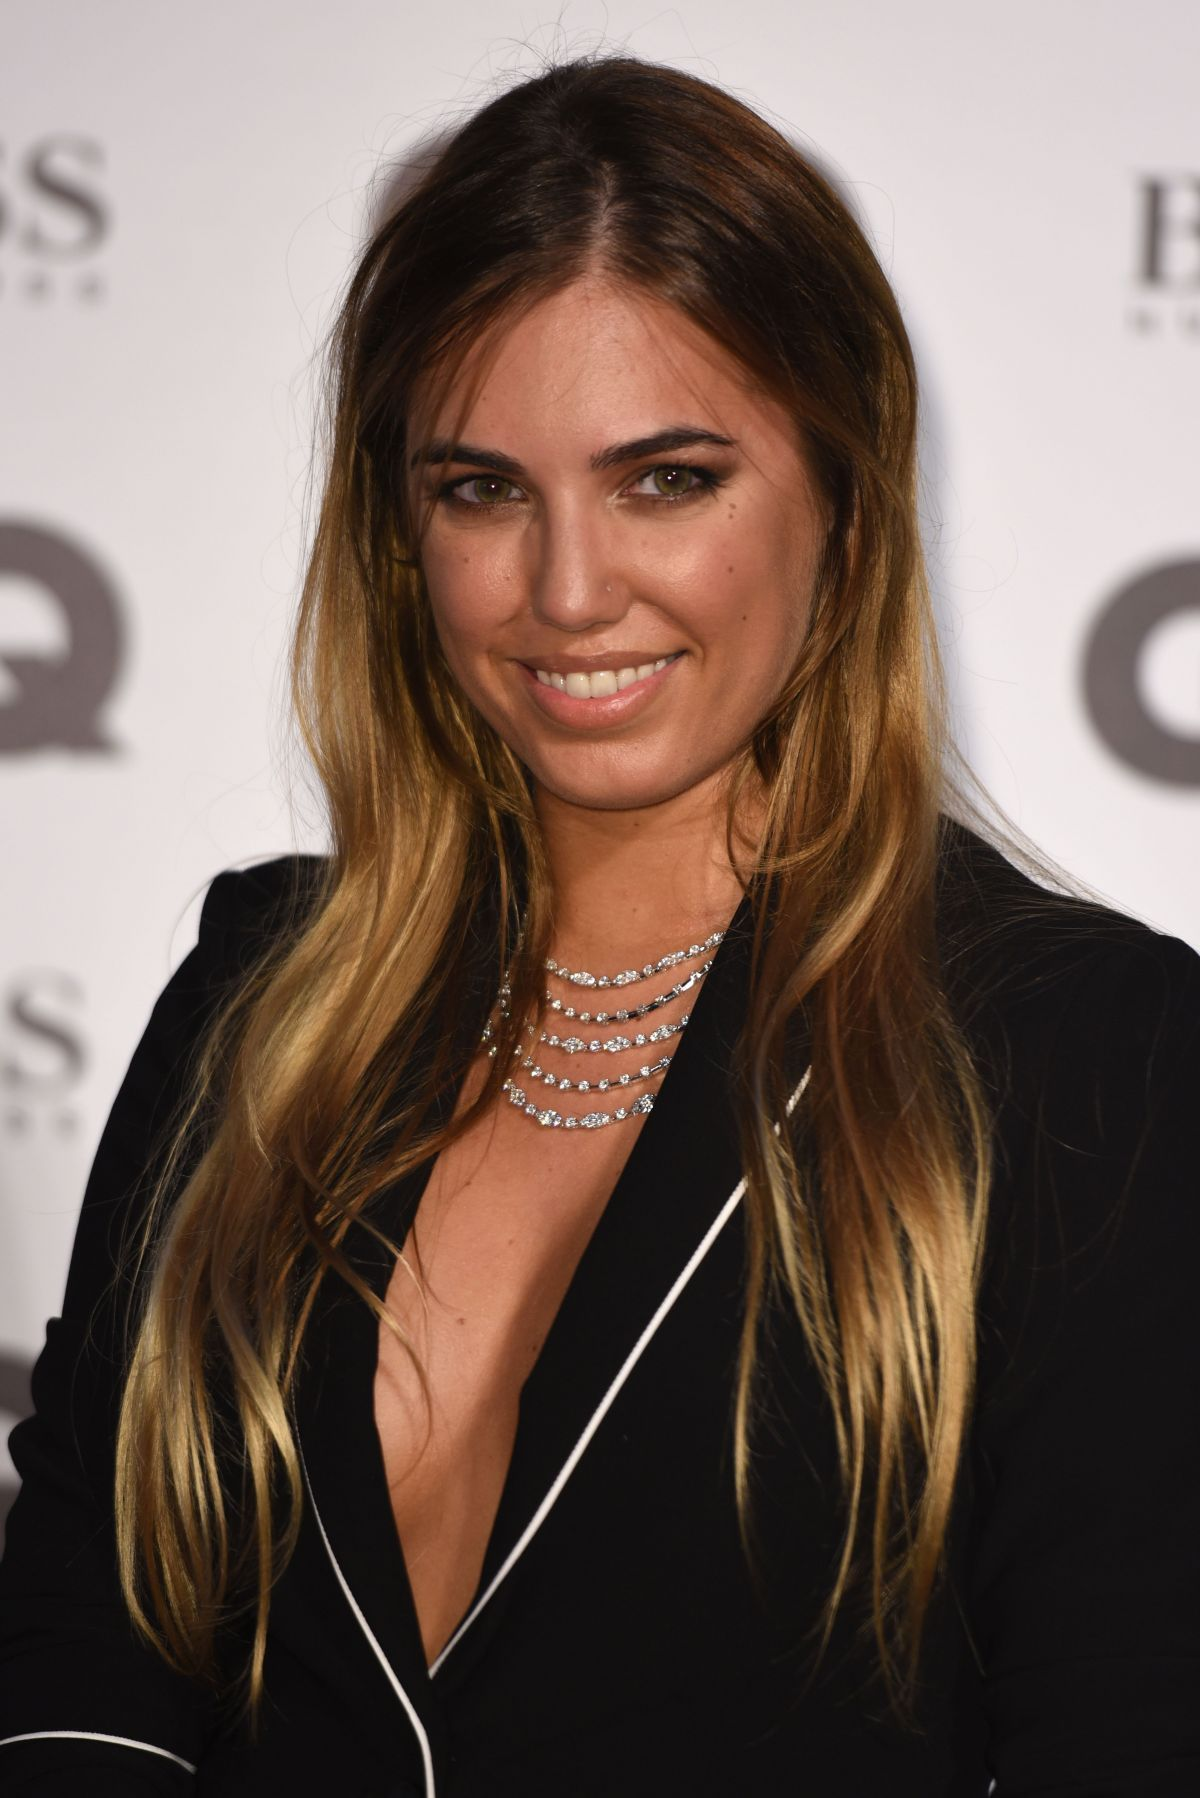 Amber Le Bon Nude amber le bon nudes snapchat, pictures tits